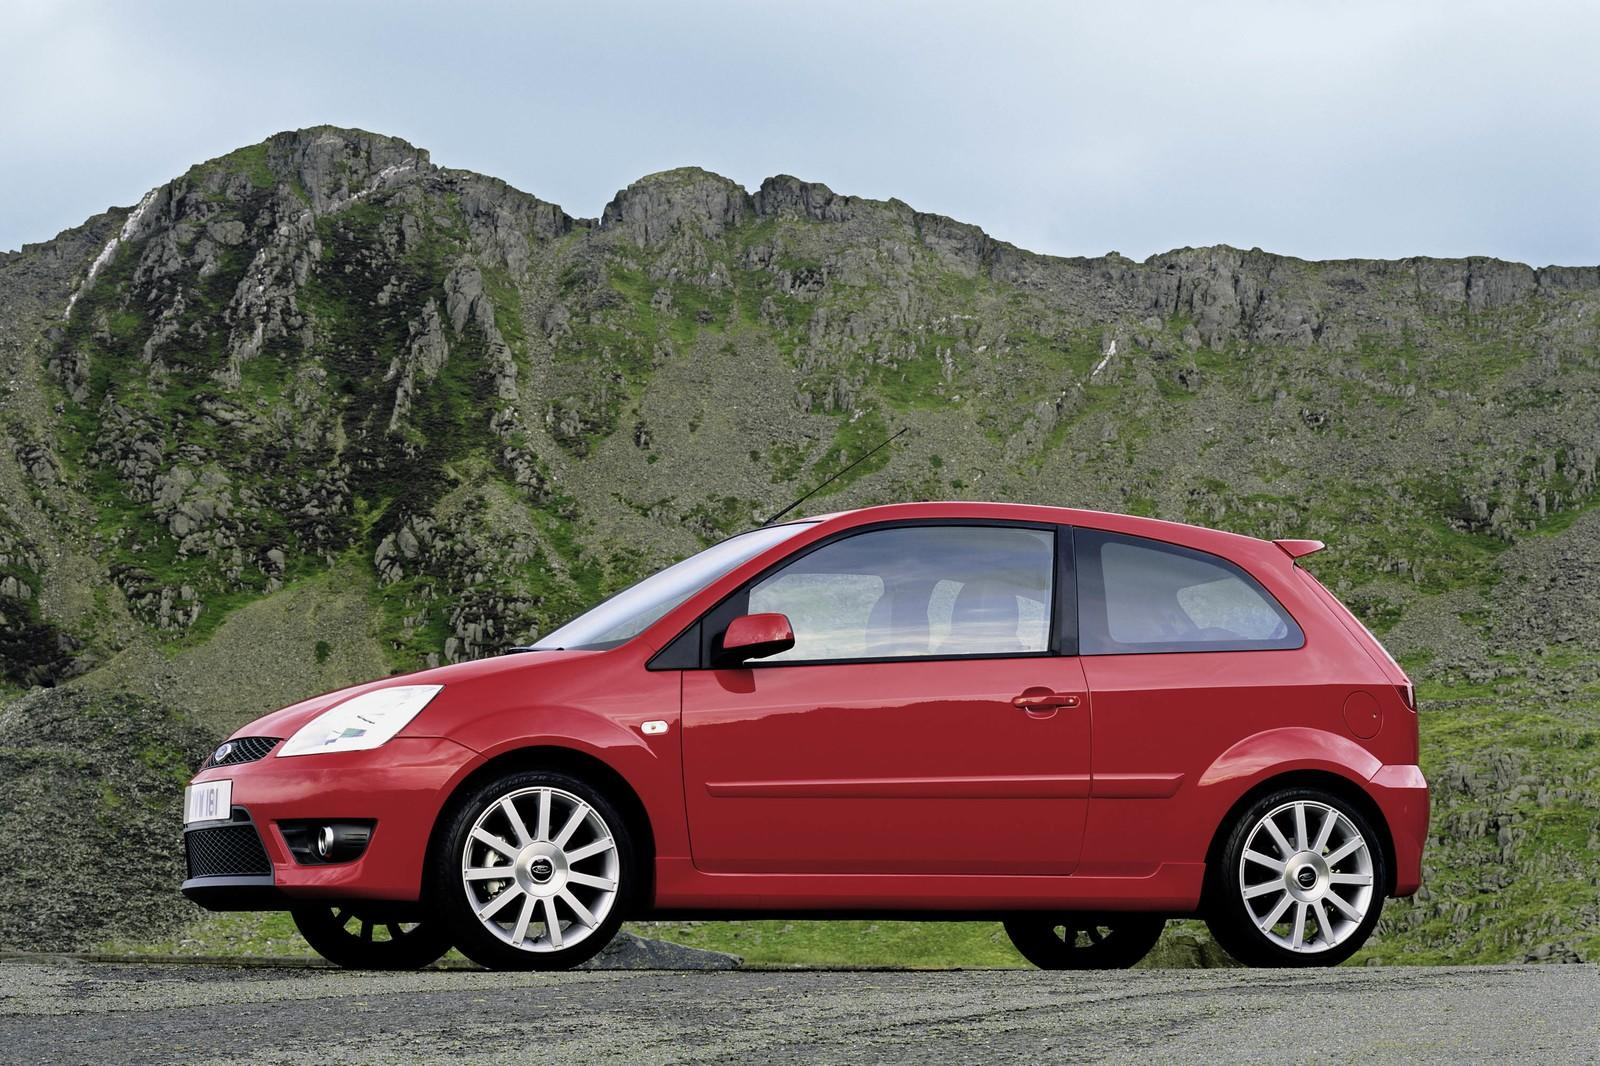 2007 ford fiesta st picture 154428 car review top speed. Black Bedroom Furniture Sets. Home Design Ideas